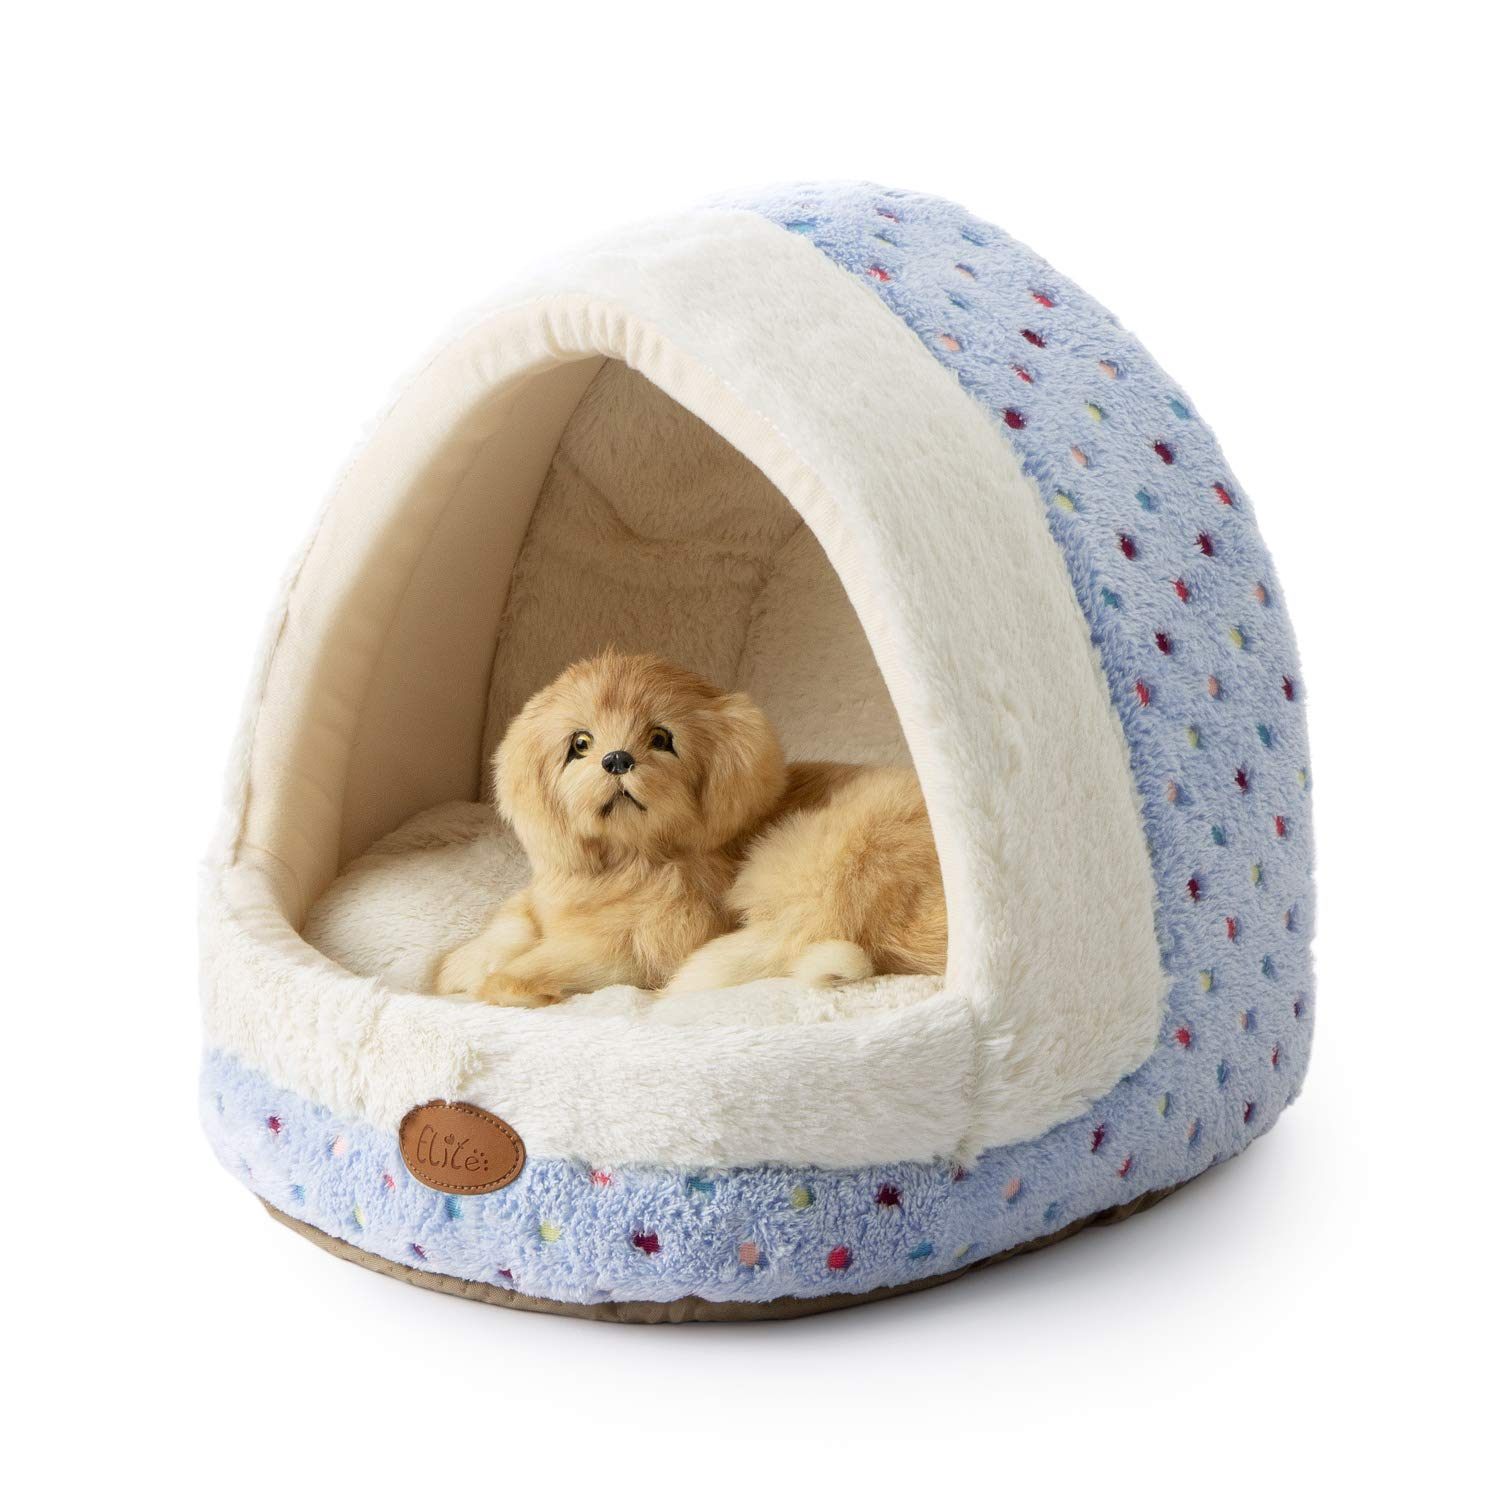 Tofern Colorful Dots Patterns Striped Cute Pet Fleece Bed Puppy Small Medium Dog Cat Sleeping Igloo House Non-Slip Warm…